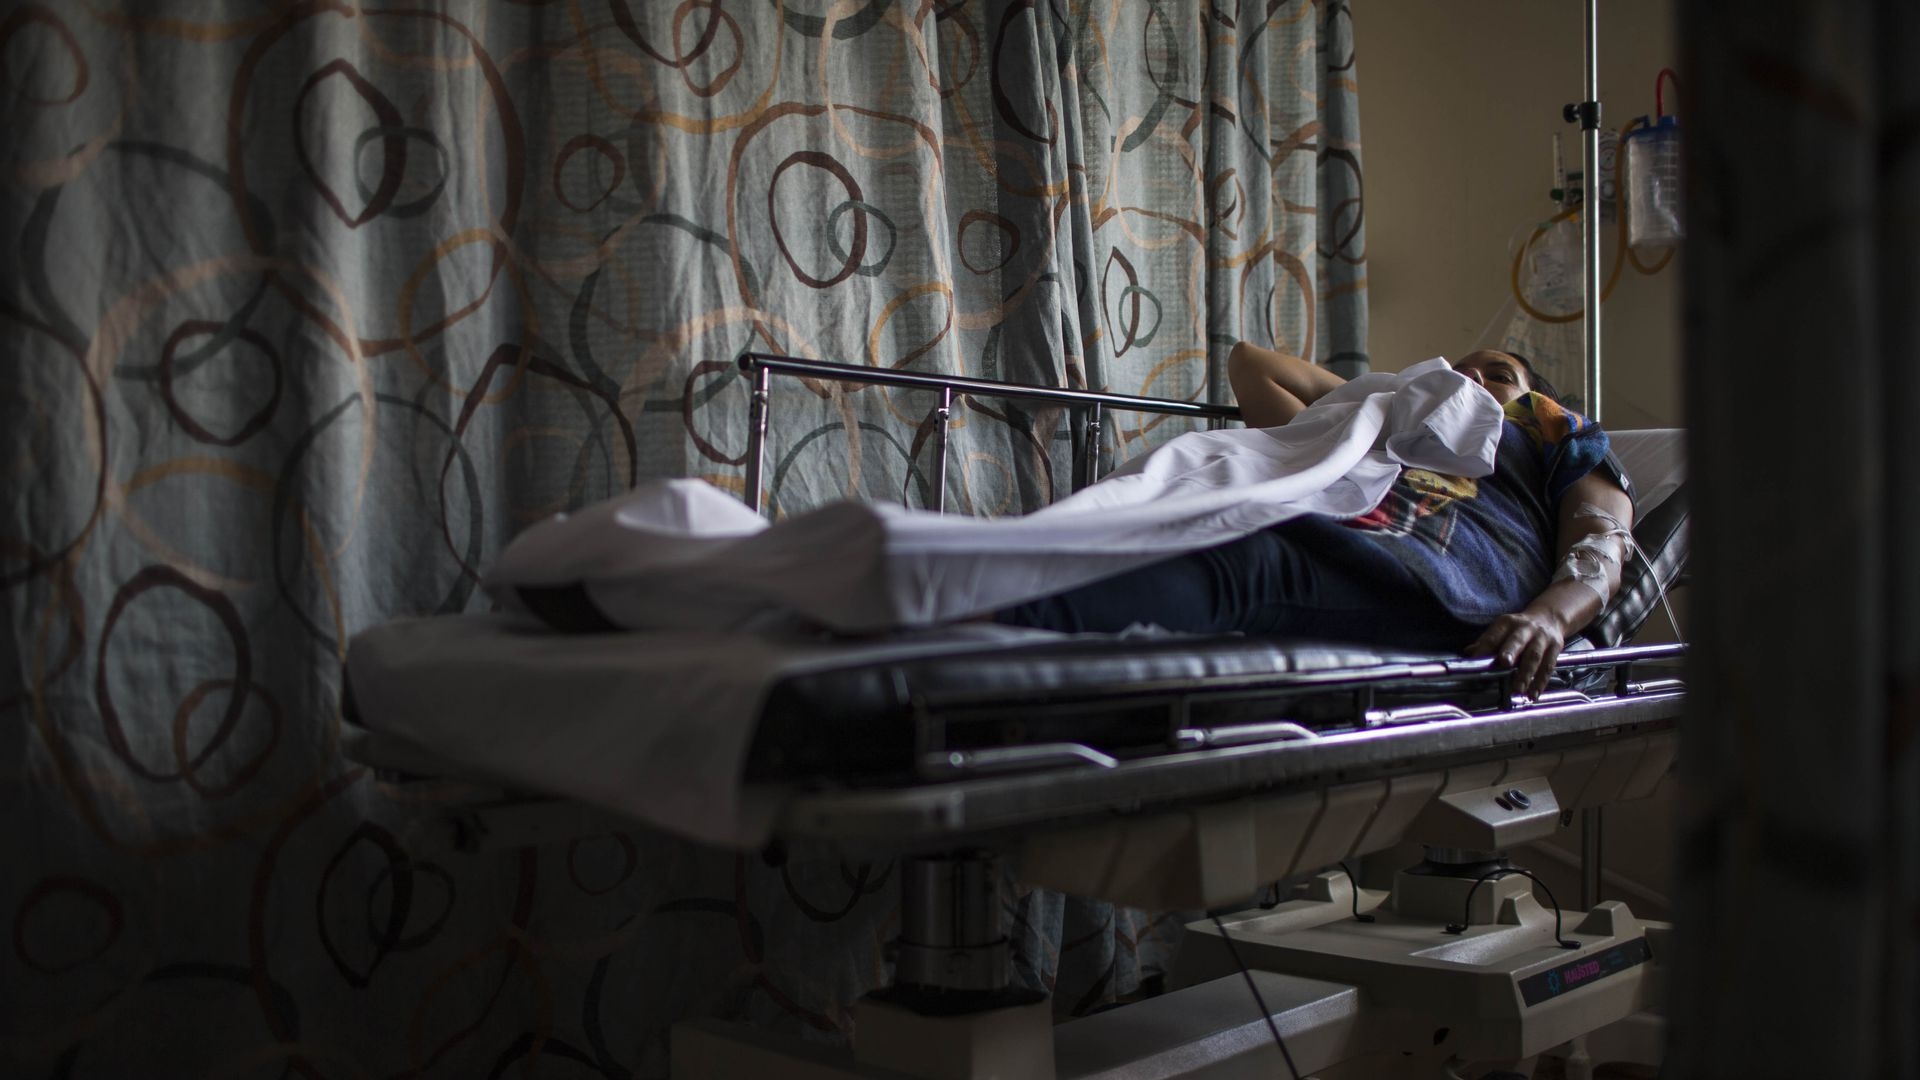 A patient rests in a hospital emergency room.